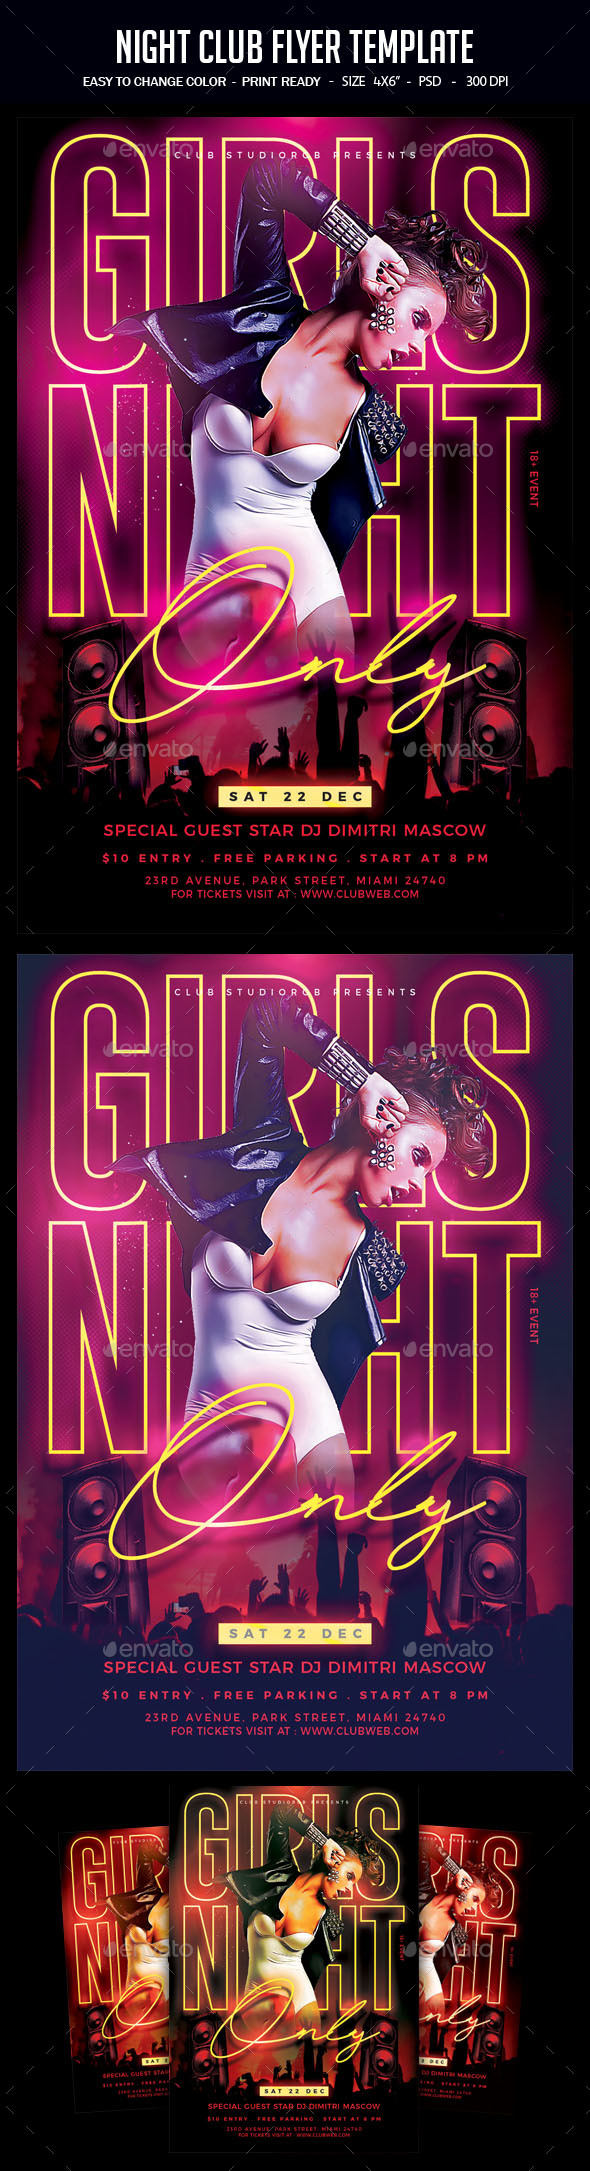 Flyers PSD – Night Club Flyer Template – Download